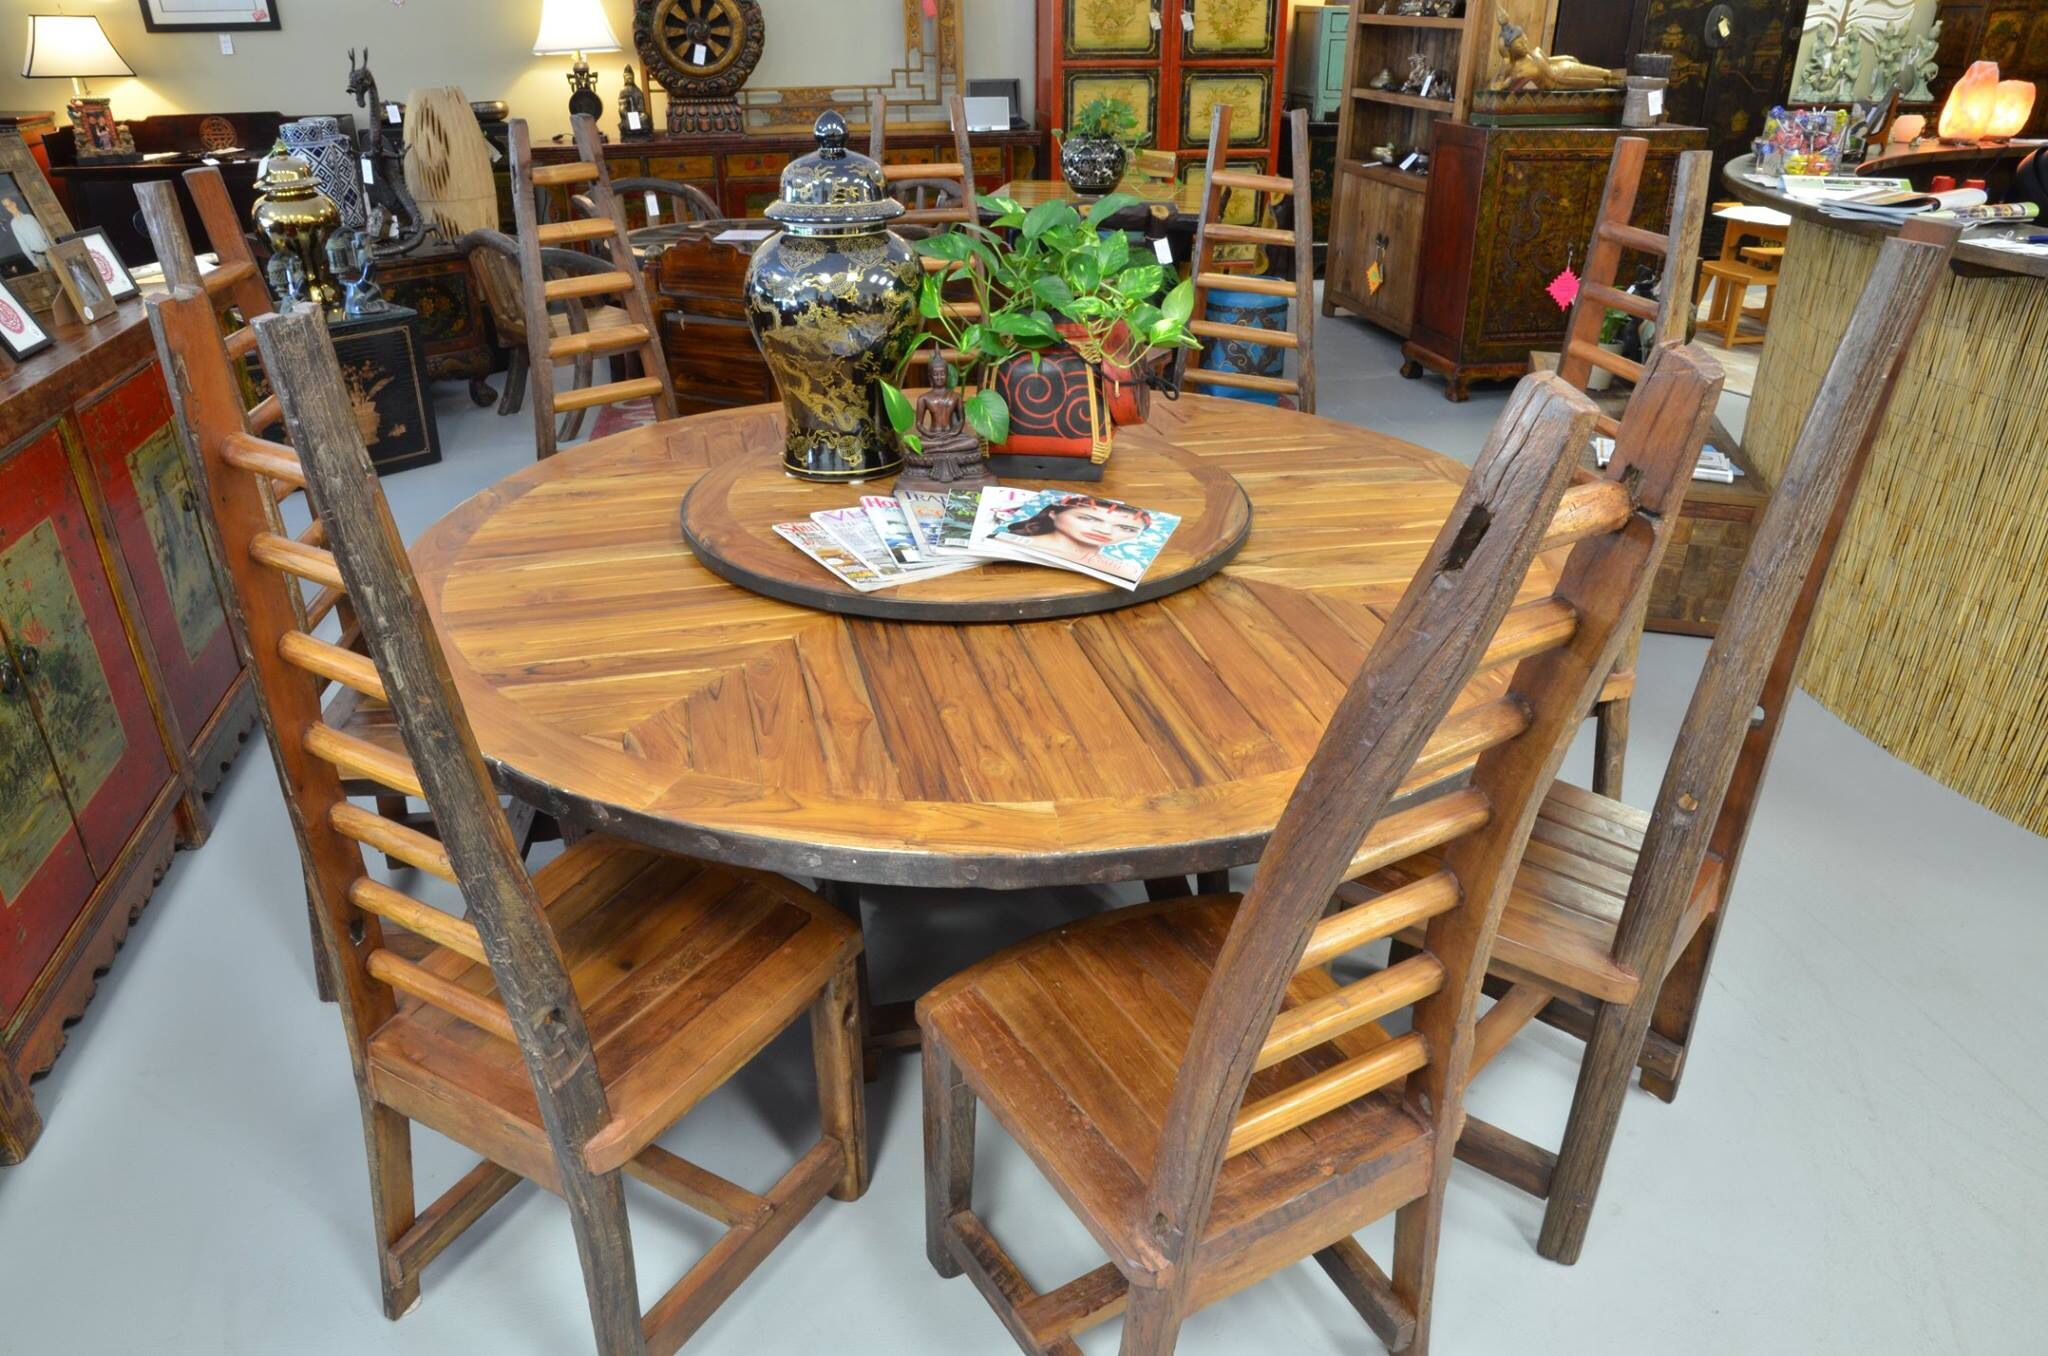 Repurposed Teak Table With Lazy Susan From Thailand Teak Table